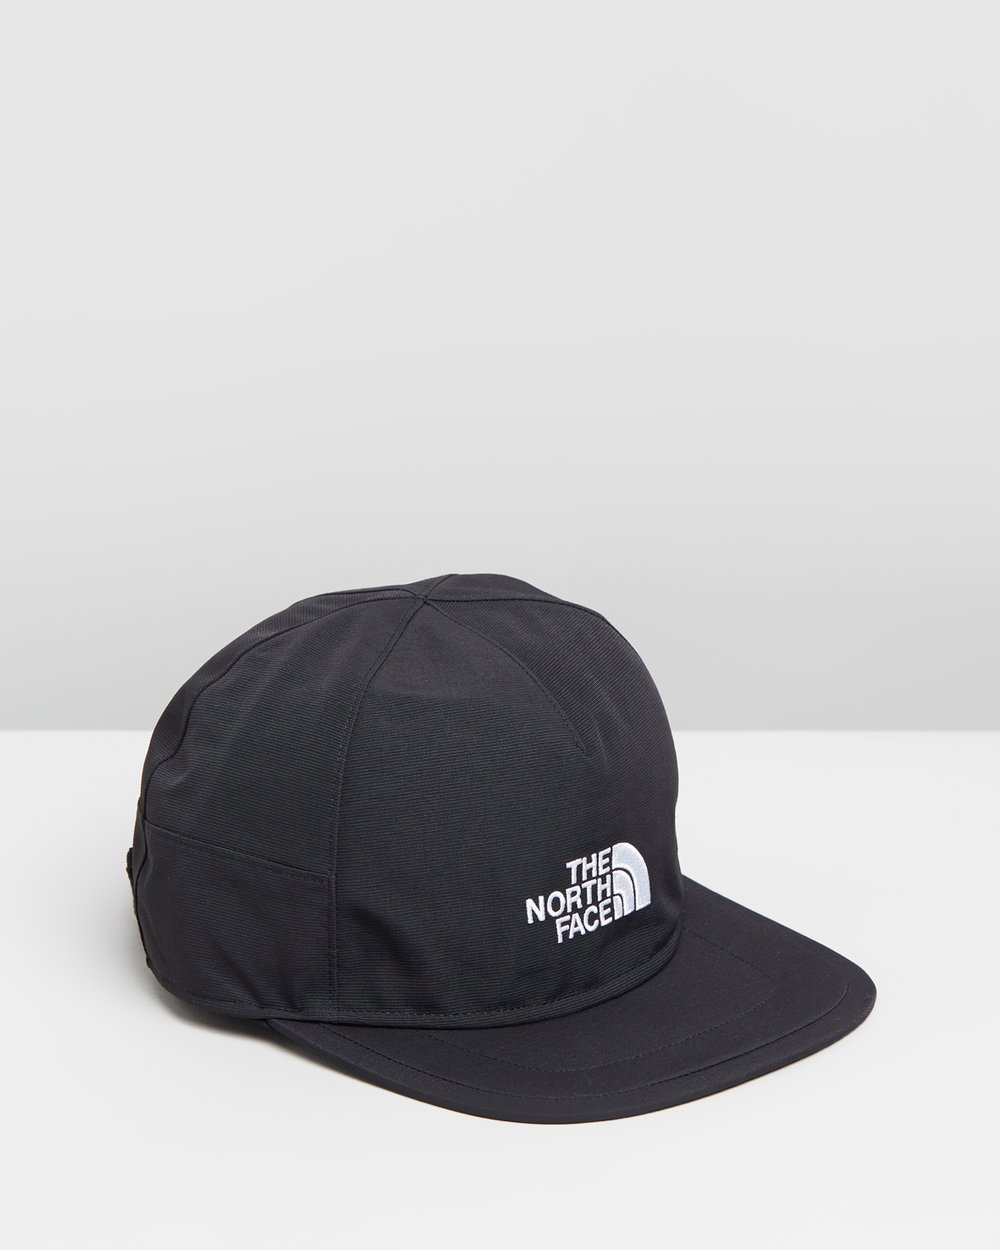 305a3562126 Gore Mountain Ball Cap - Unisex by The North Face Online